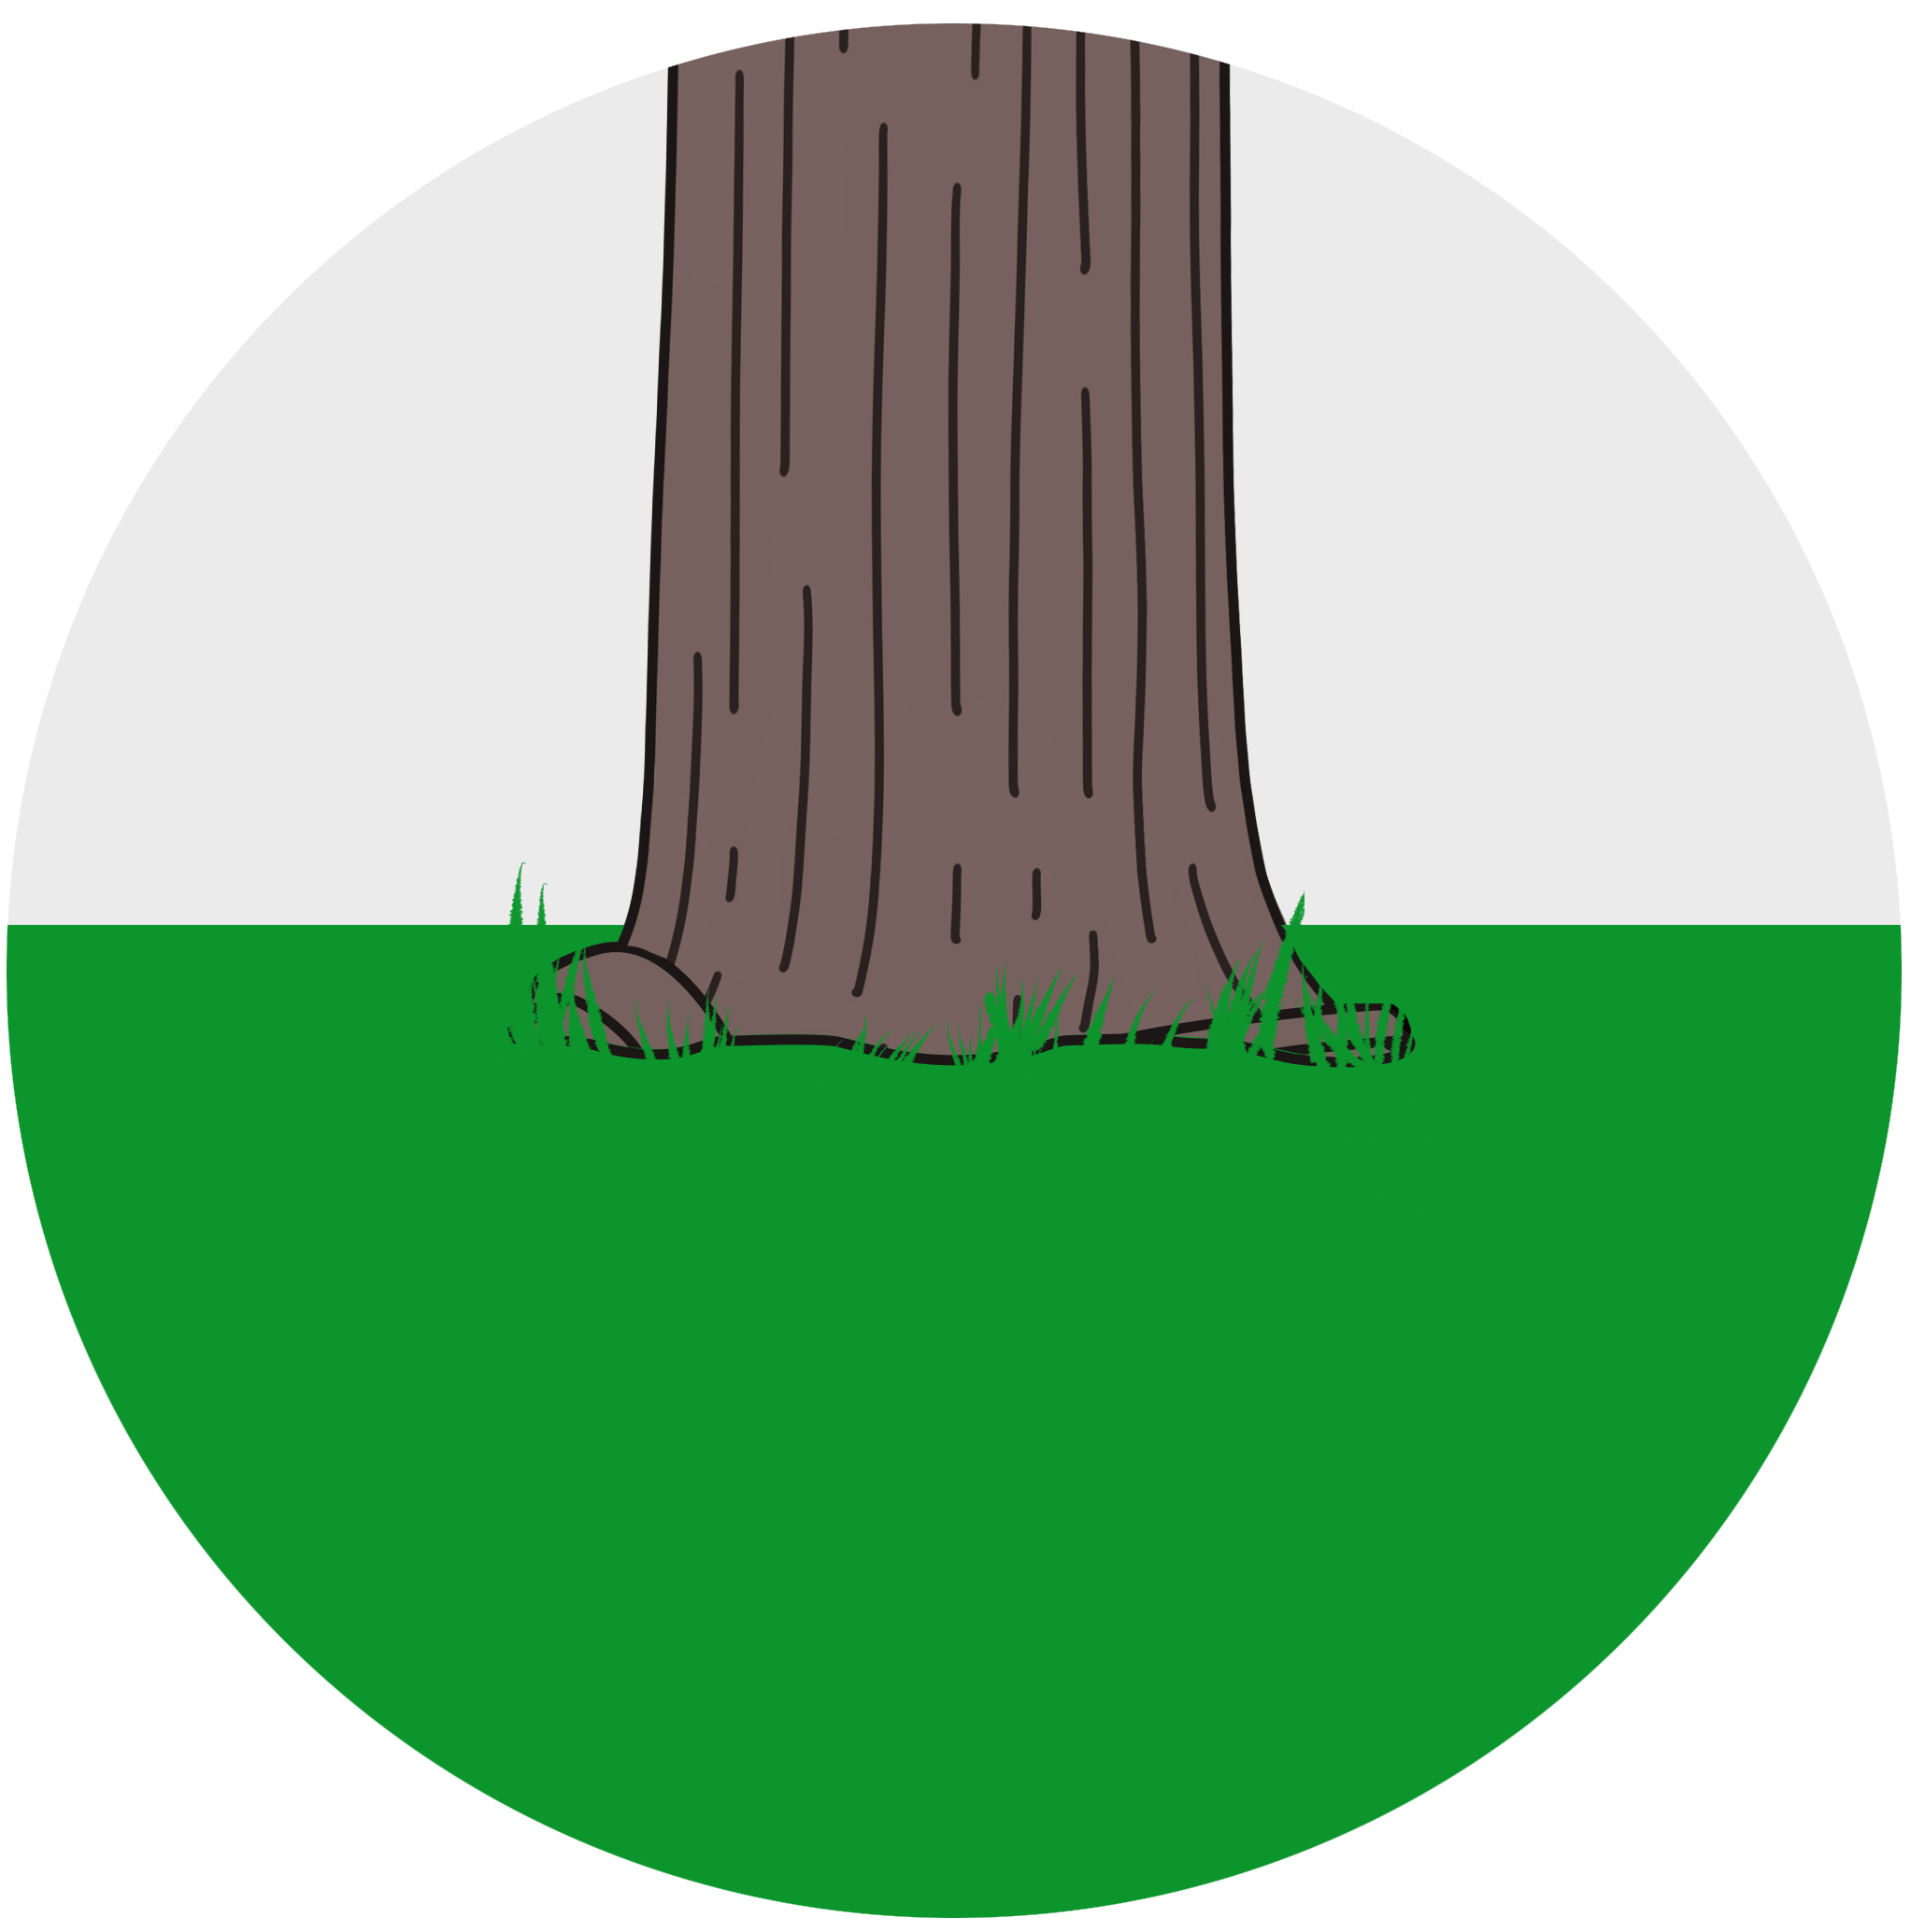 STEP 1 - Review the tree to see if any visible roots are wrapped around the base of the tree. Another symptom of girdling roots is die-back starting in the top of the tree.